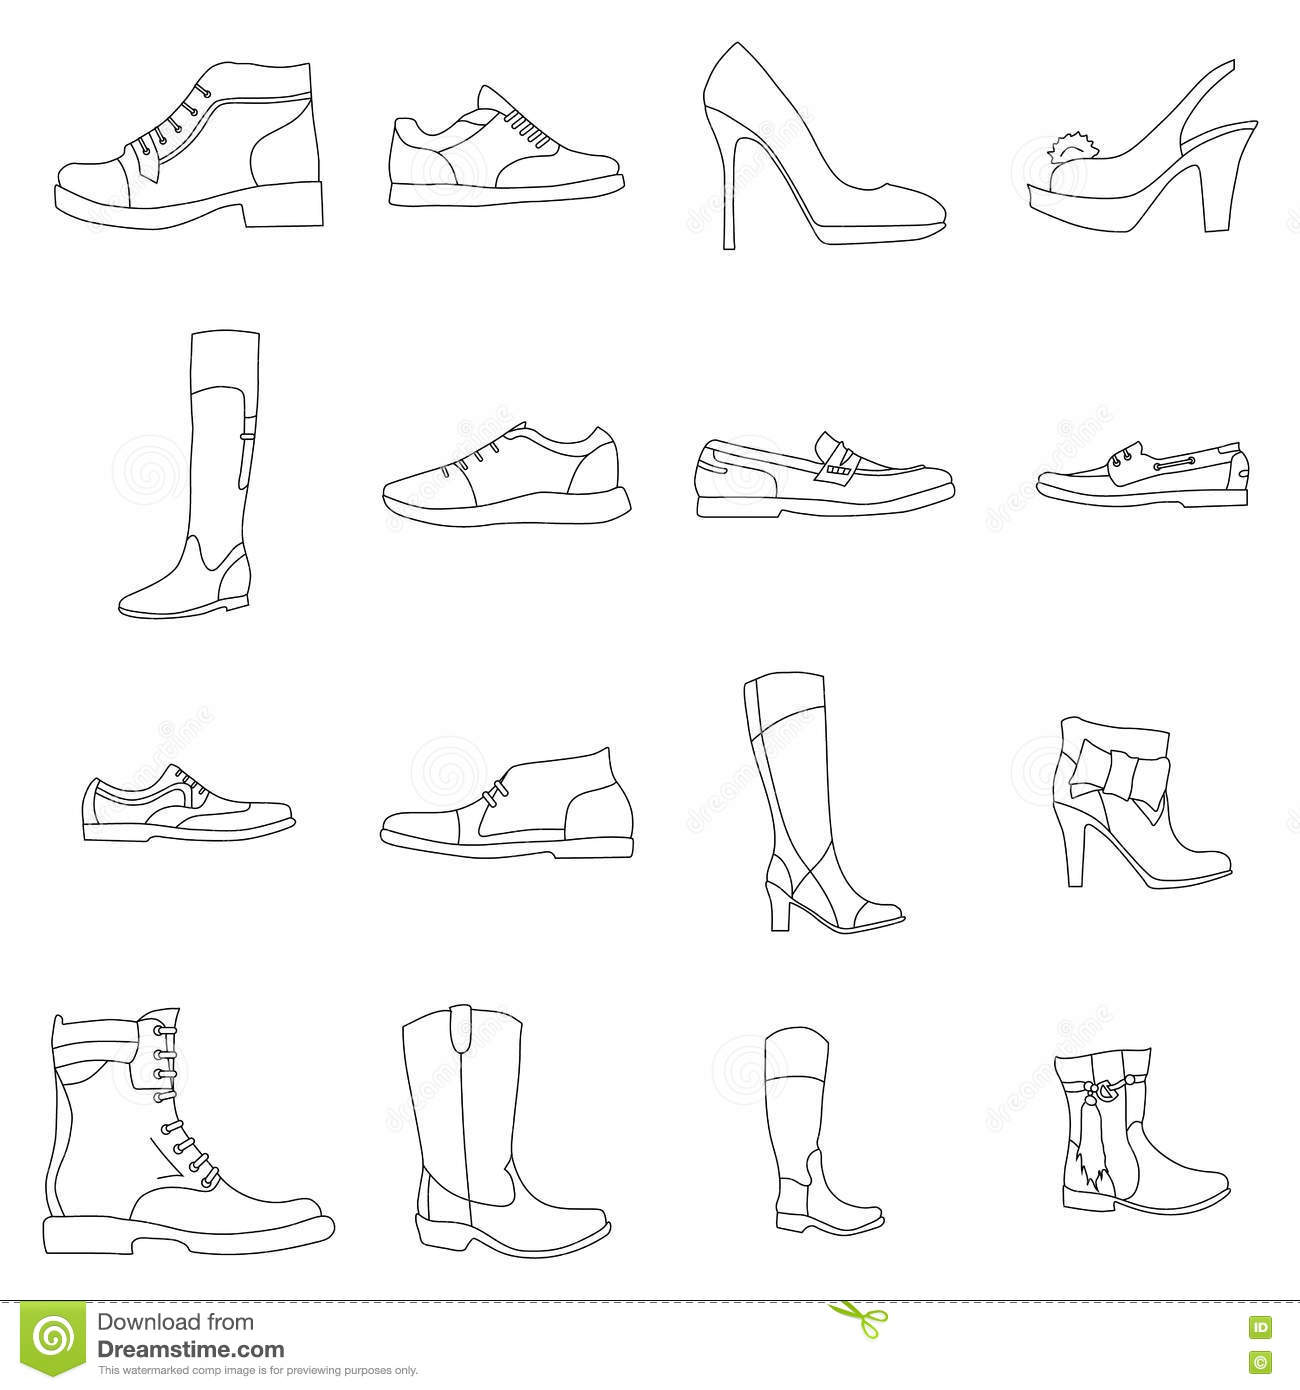 Types Of Contour Line Drawing : Different types of shoes contour an image stock vector